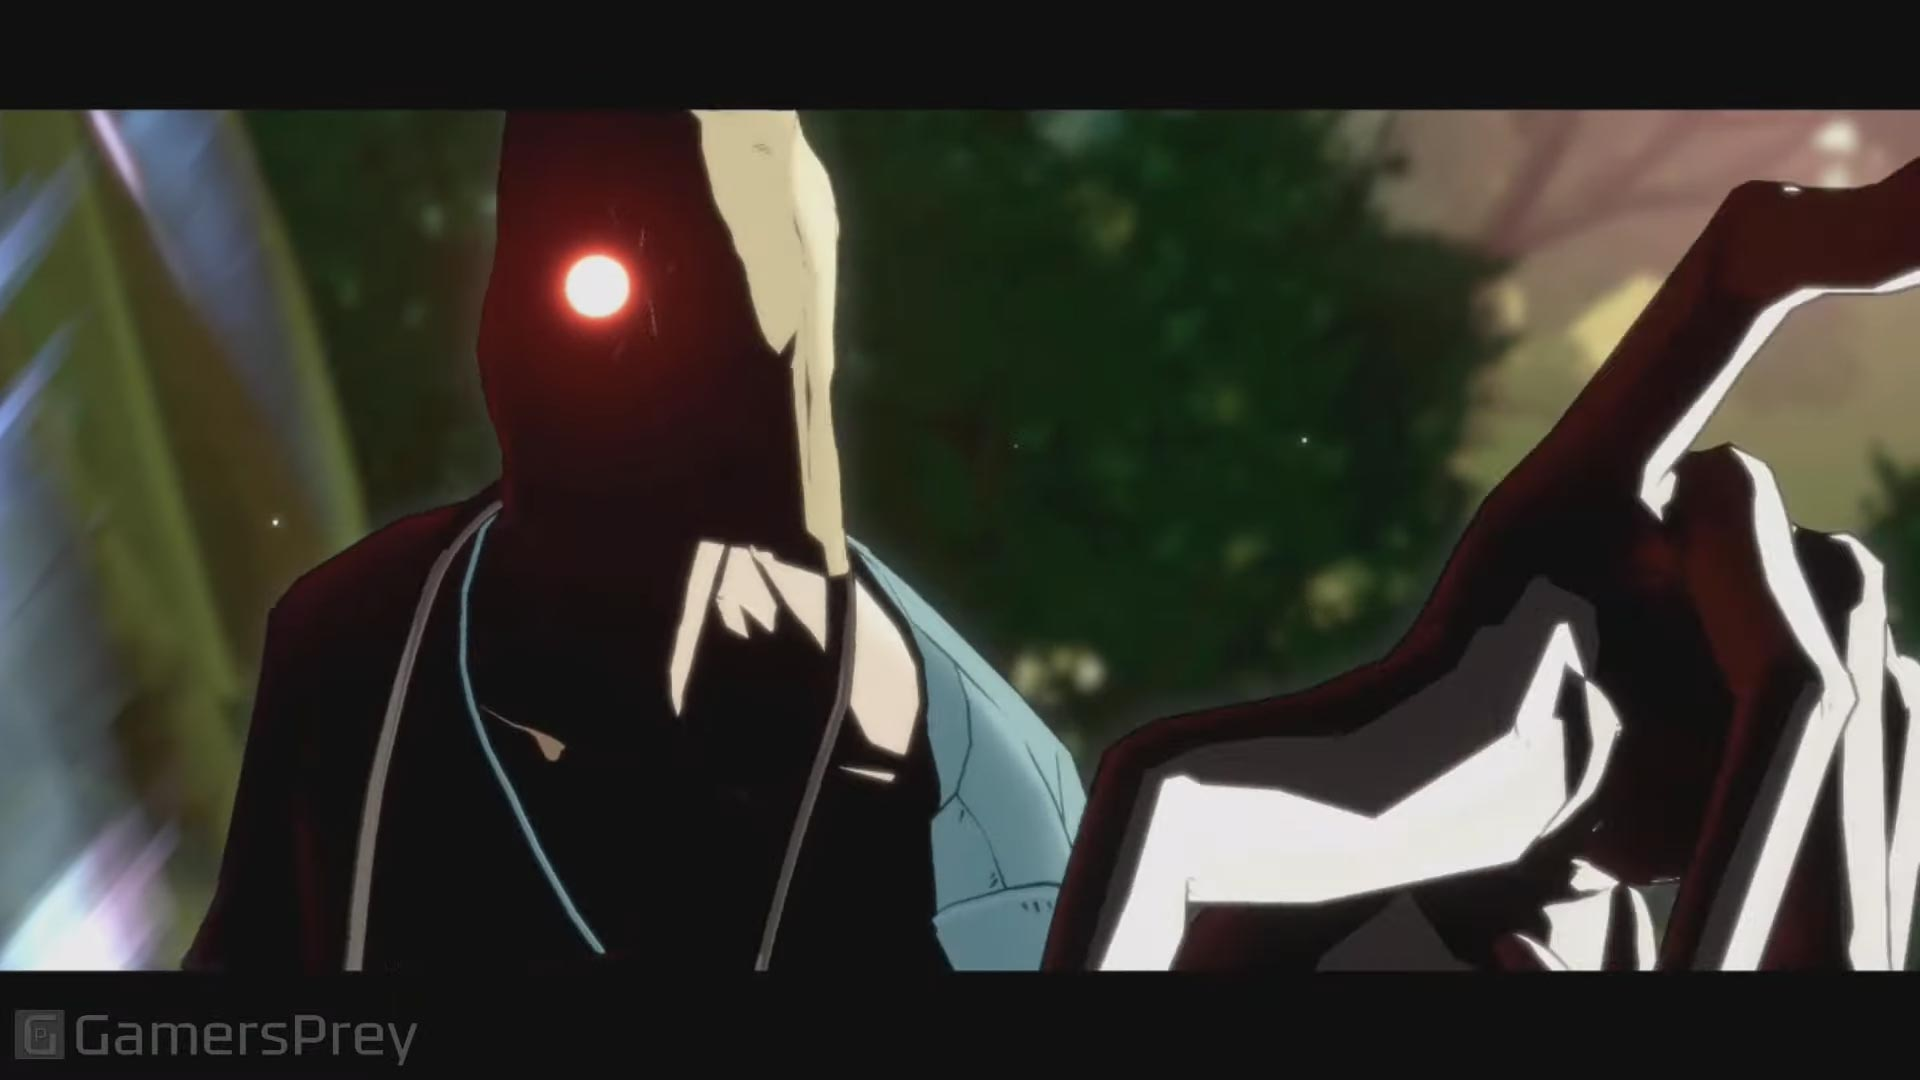 Guilty Gear Strive Faust Reveal Trailer Images 1 out of 6 image gallery